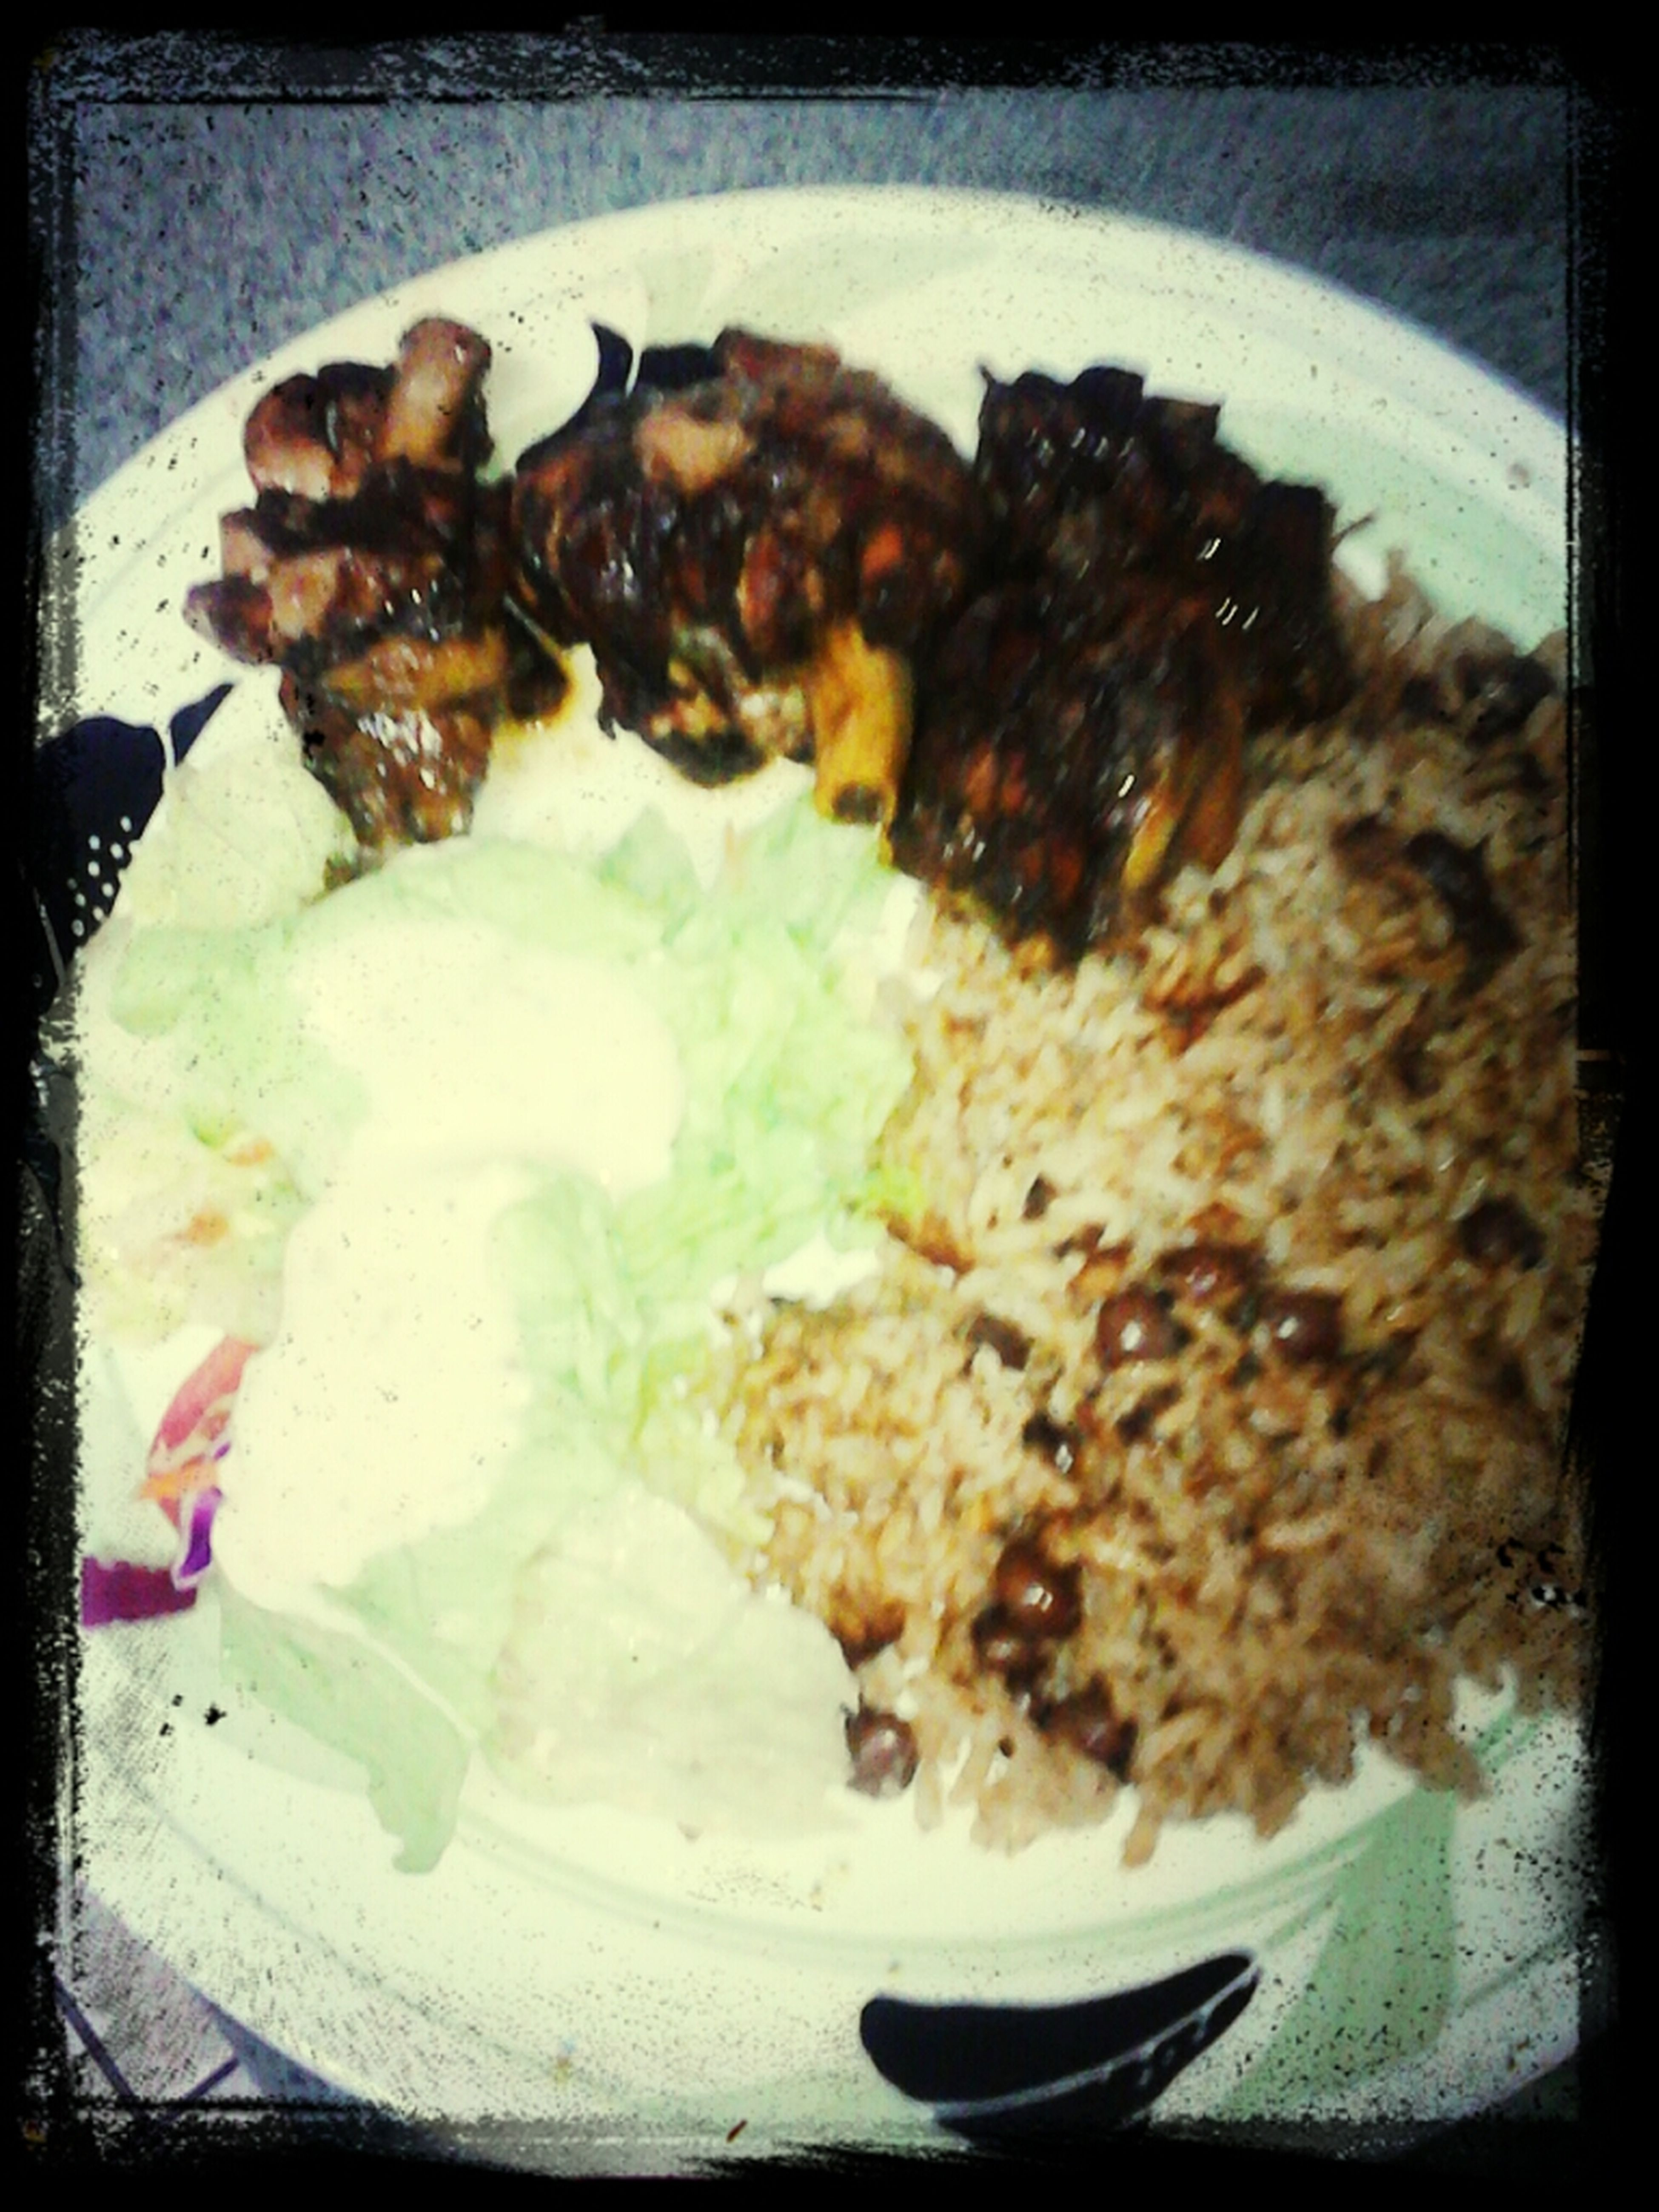 Rice And Piegon Peas, Btown Stew Chicken Side Salad W/ Creamy Italian Dressing #Jamican#Food#Good